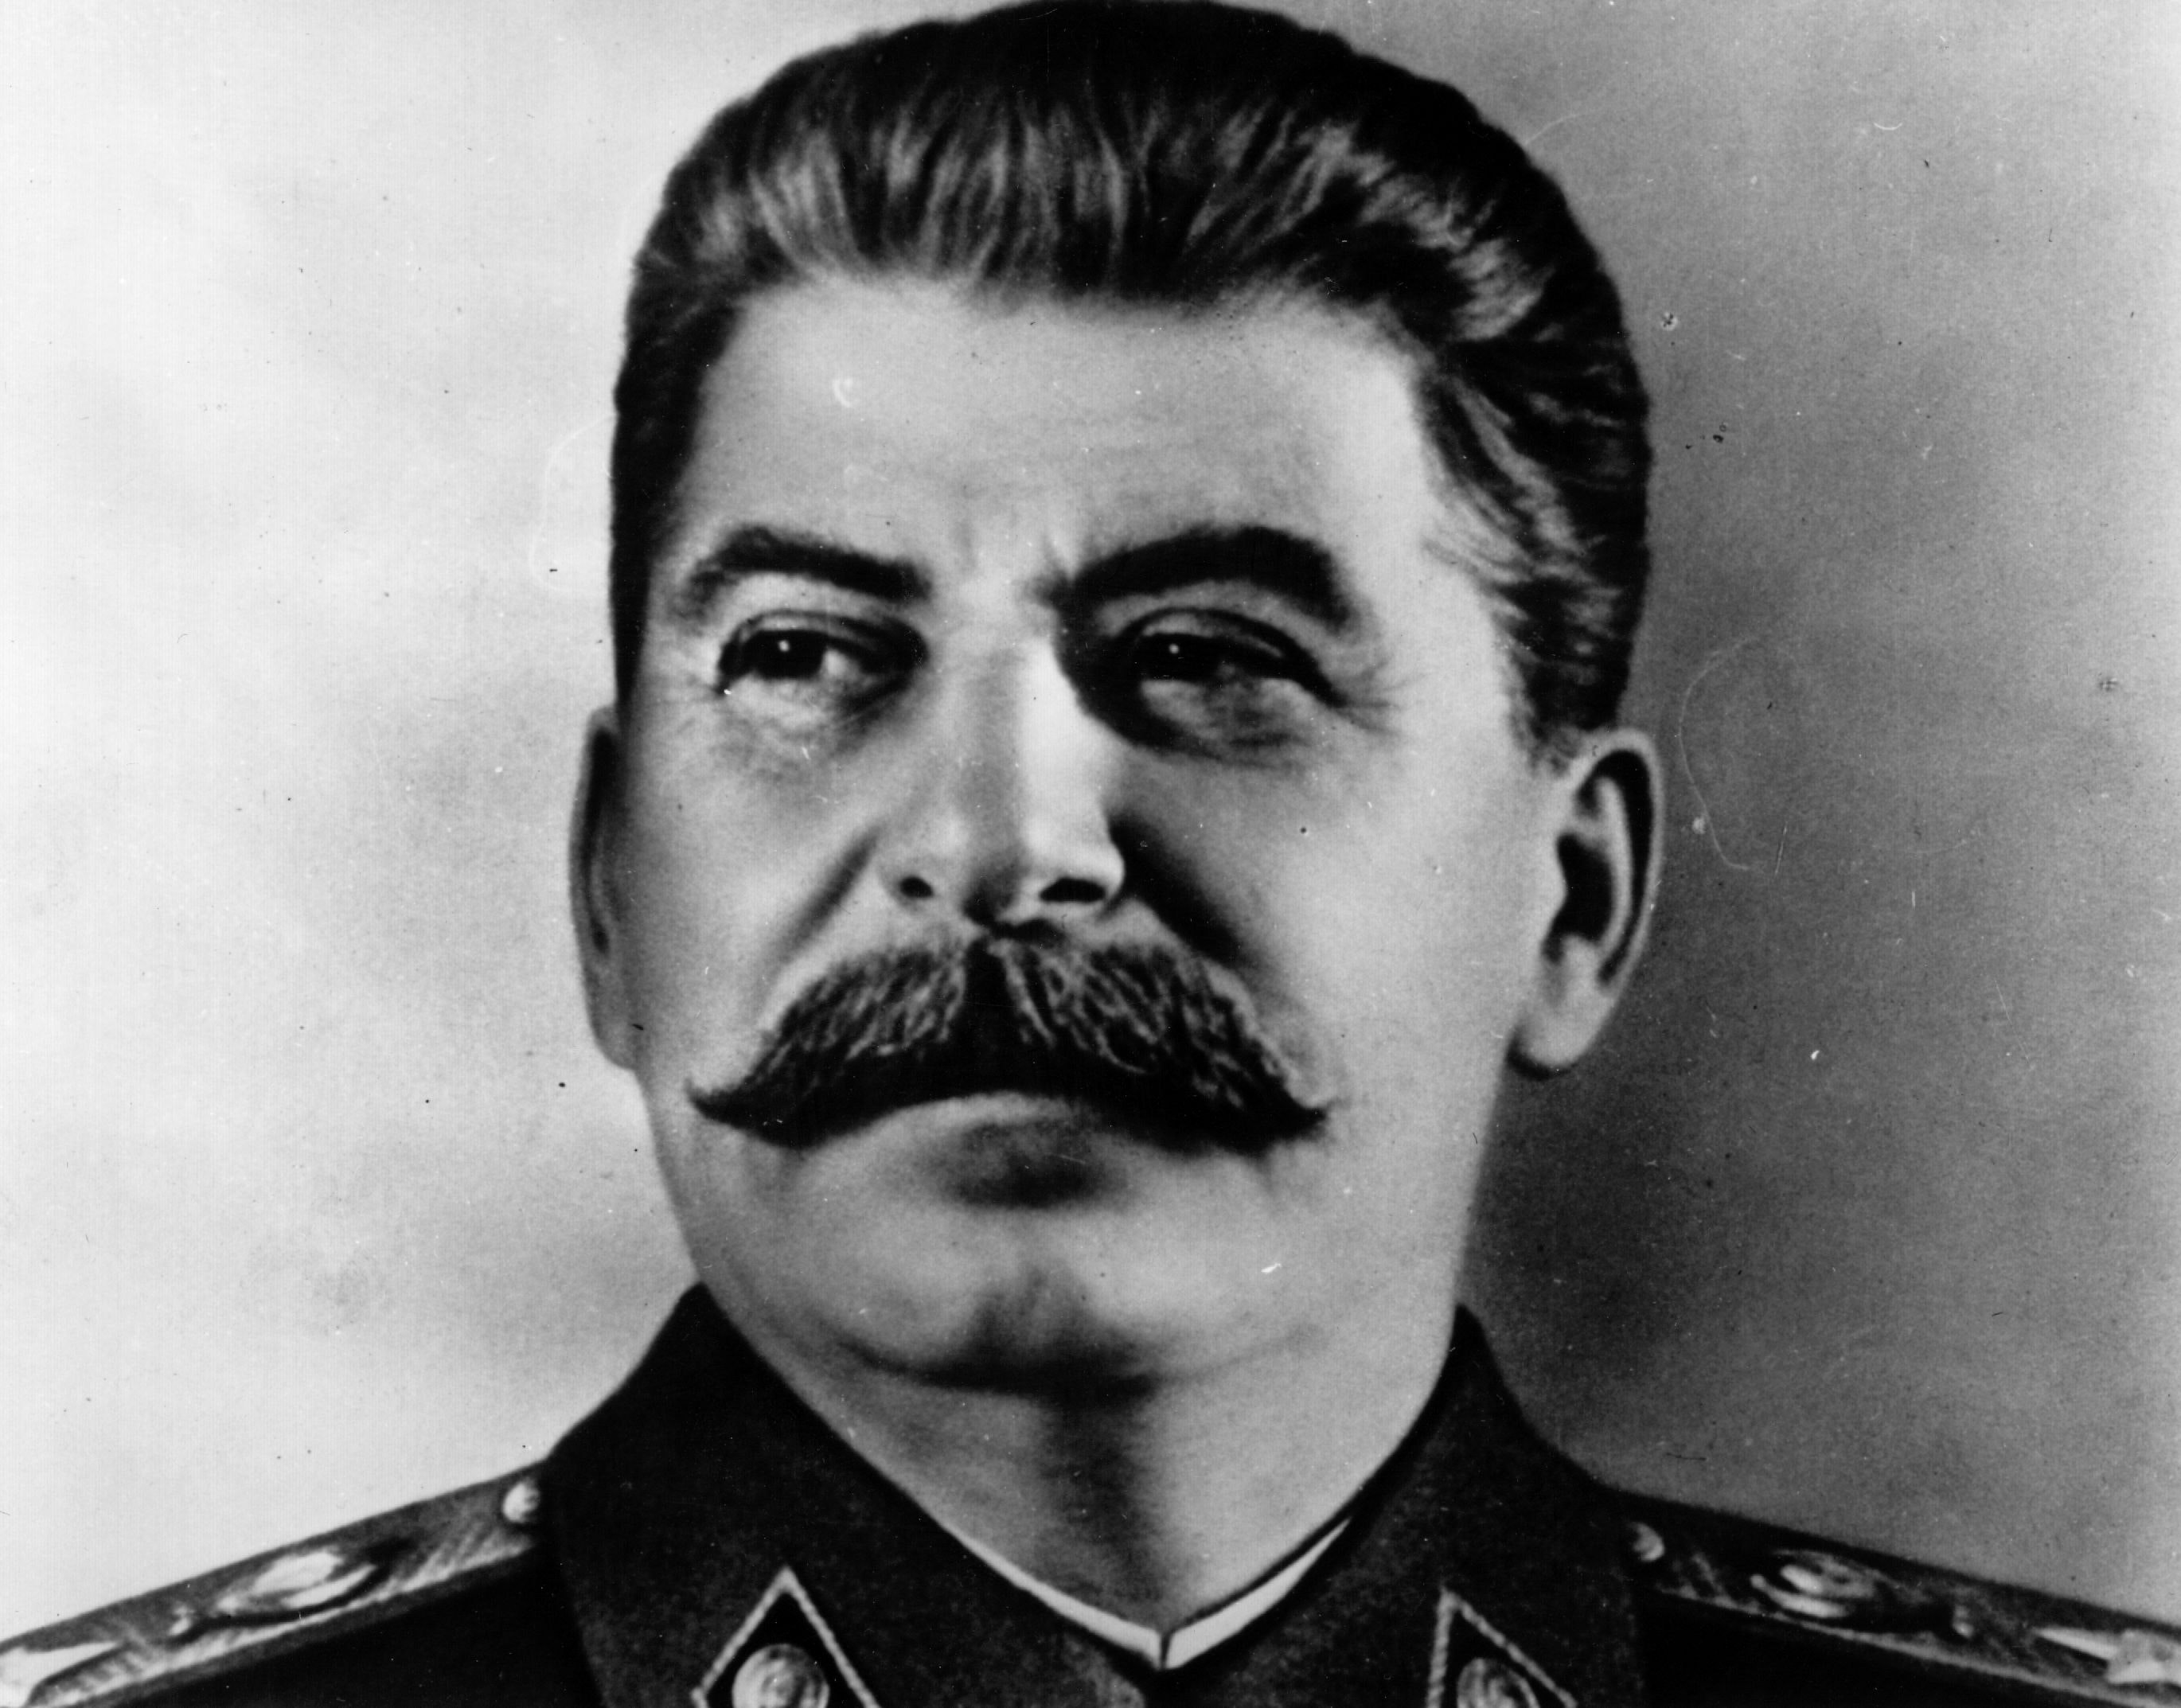 Chronicle of attempts on Stalin